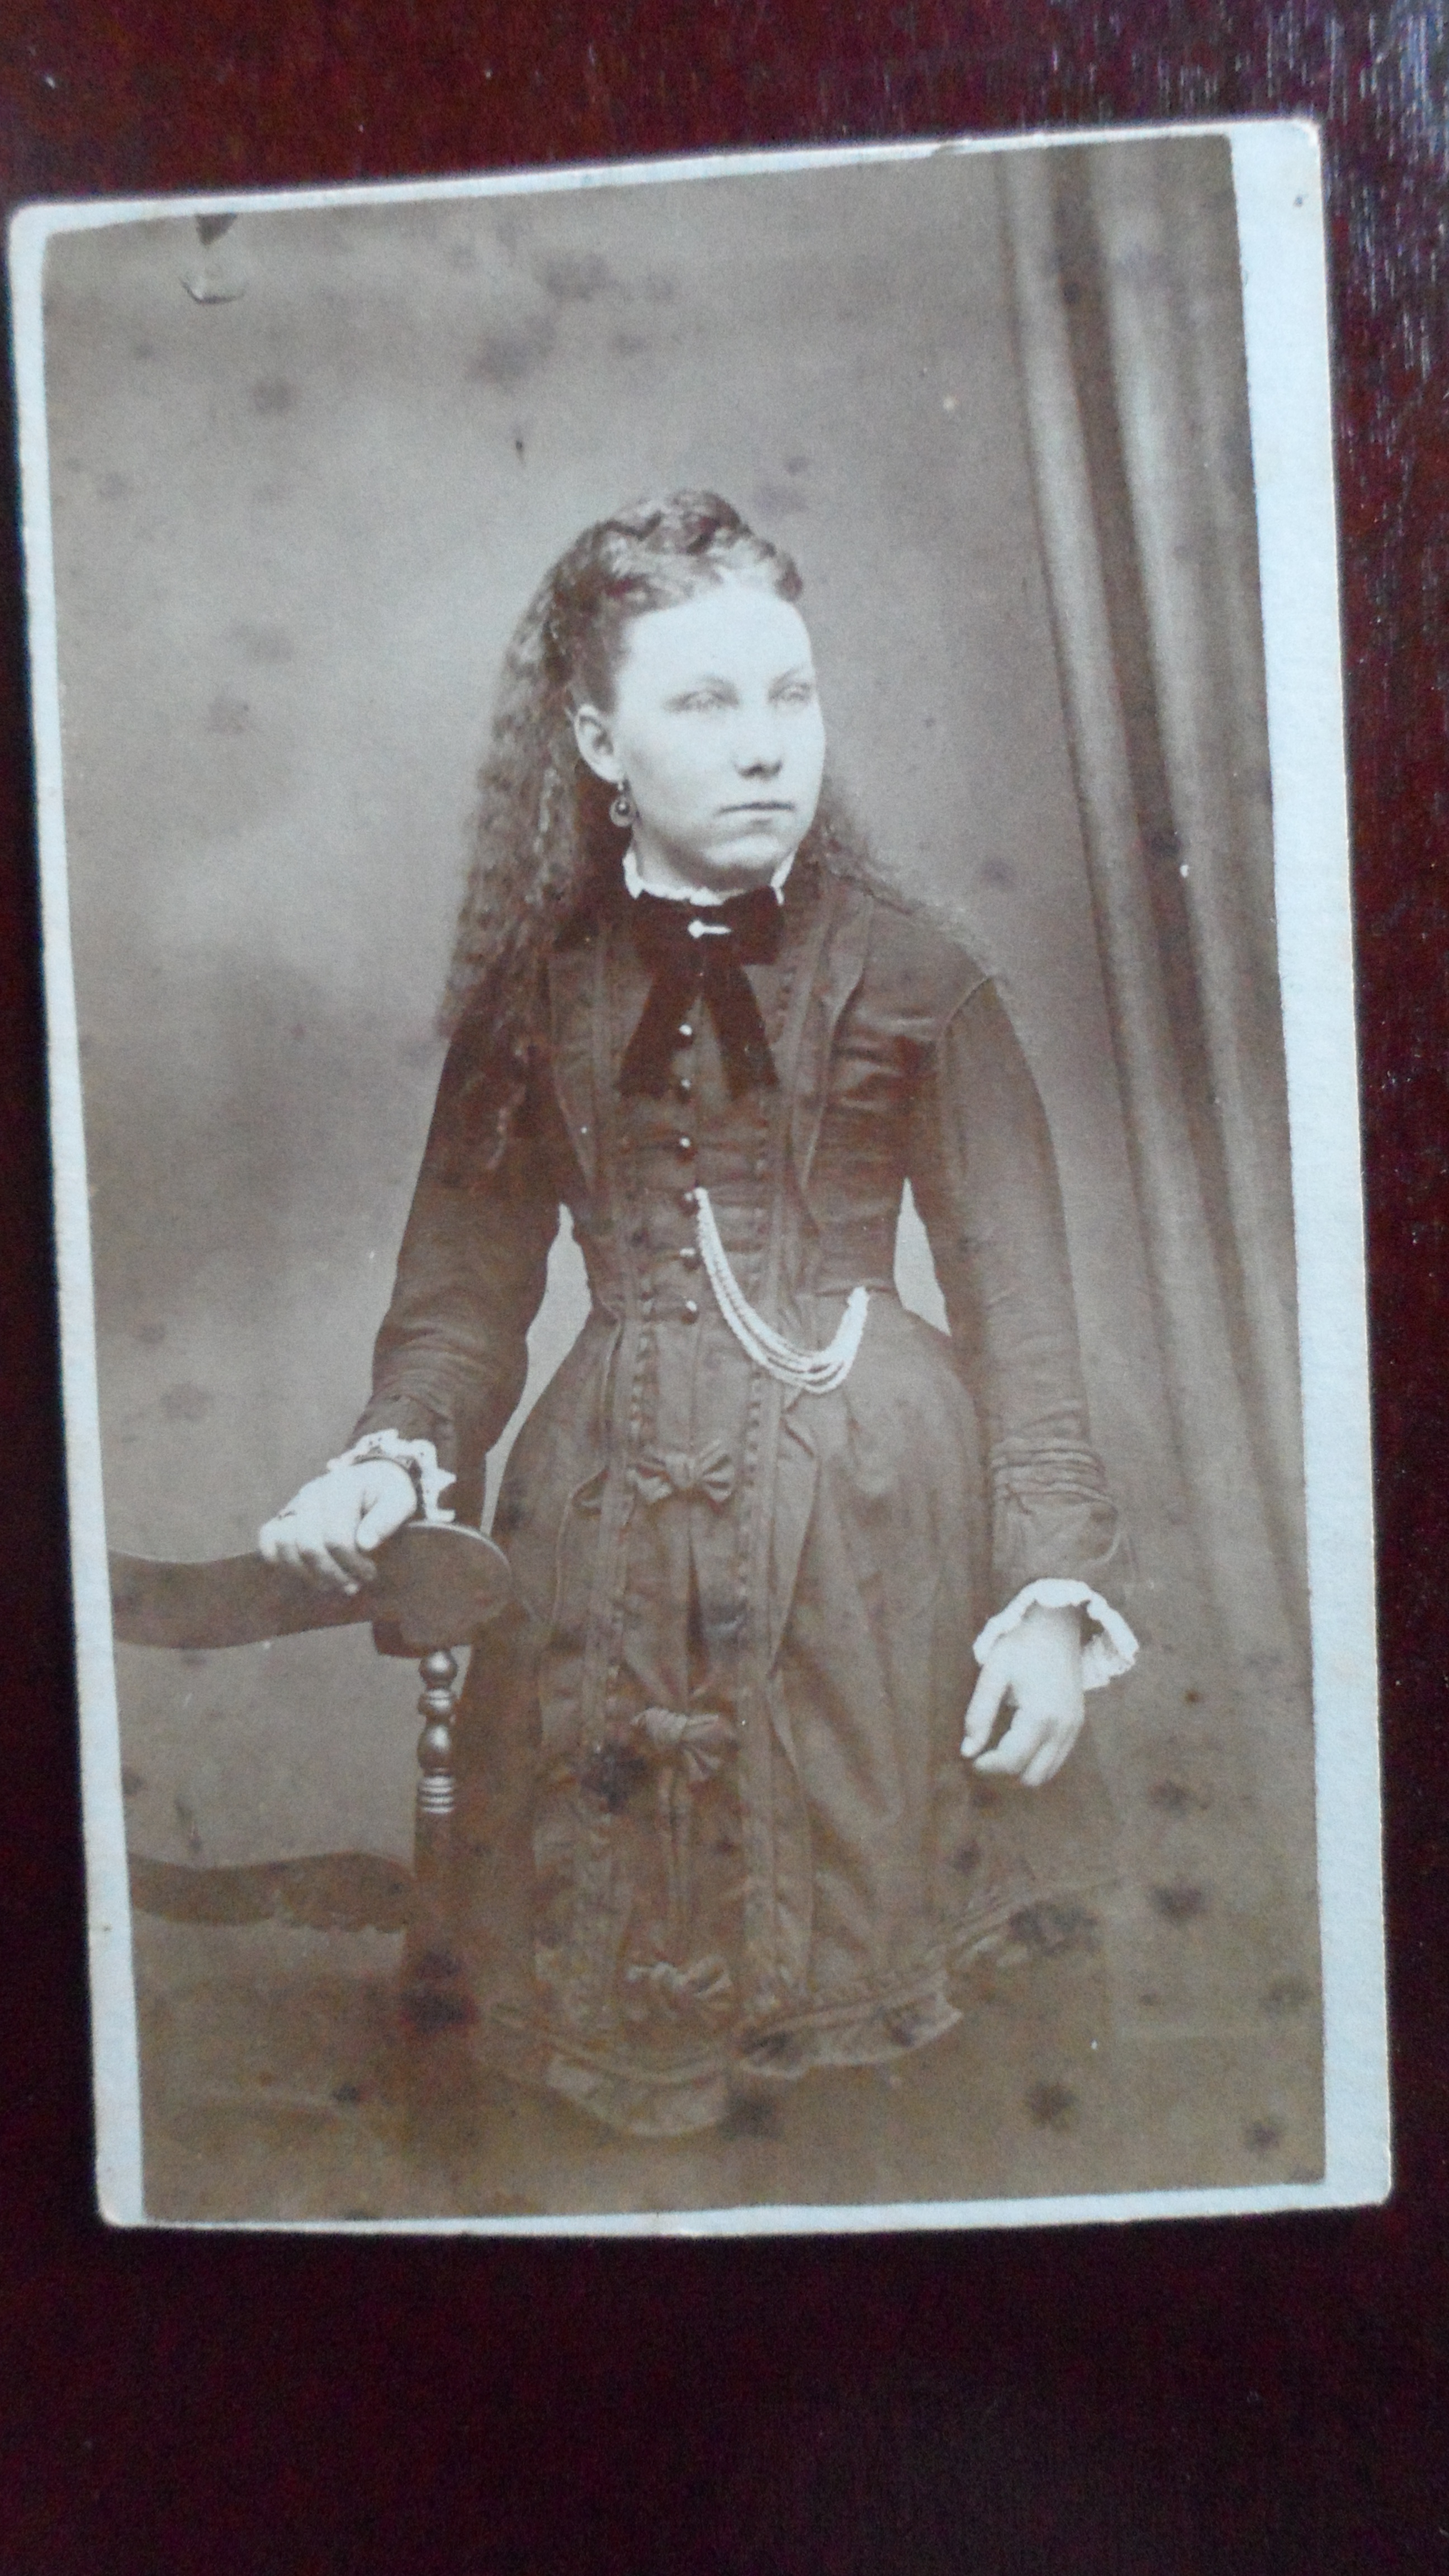 She Is Wearing Quite A Bit Of Jewlry Large Circular Earrings Bar Pin On Her Ribbon Ring And Many Chained Pocket Watch But The Real Eye Catcher